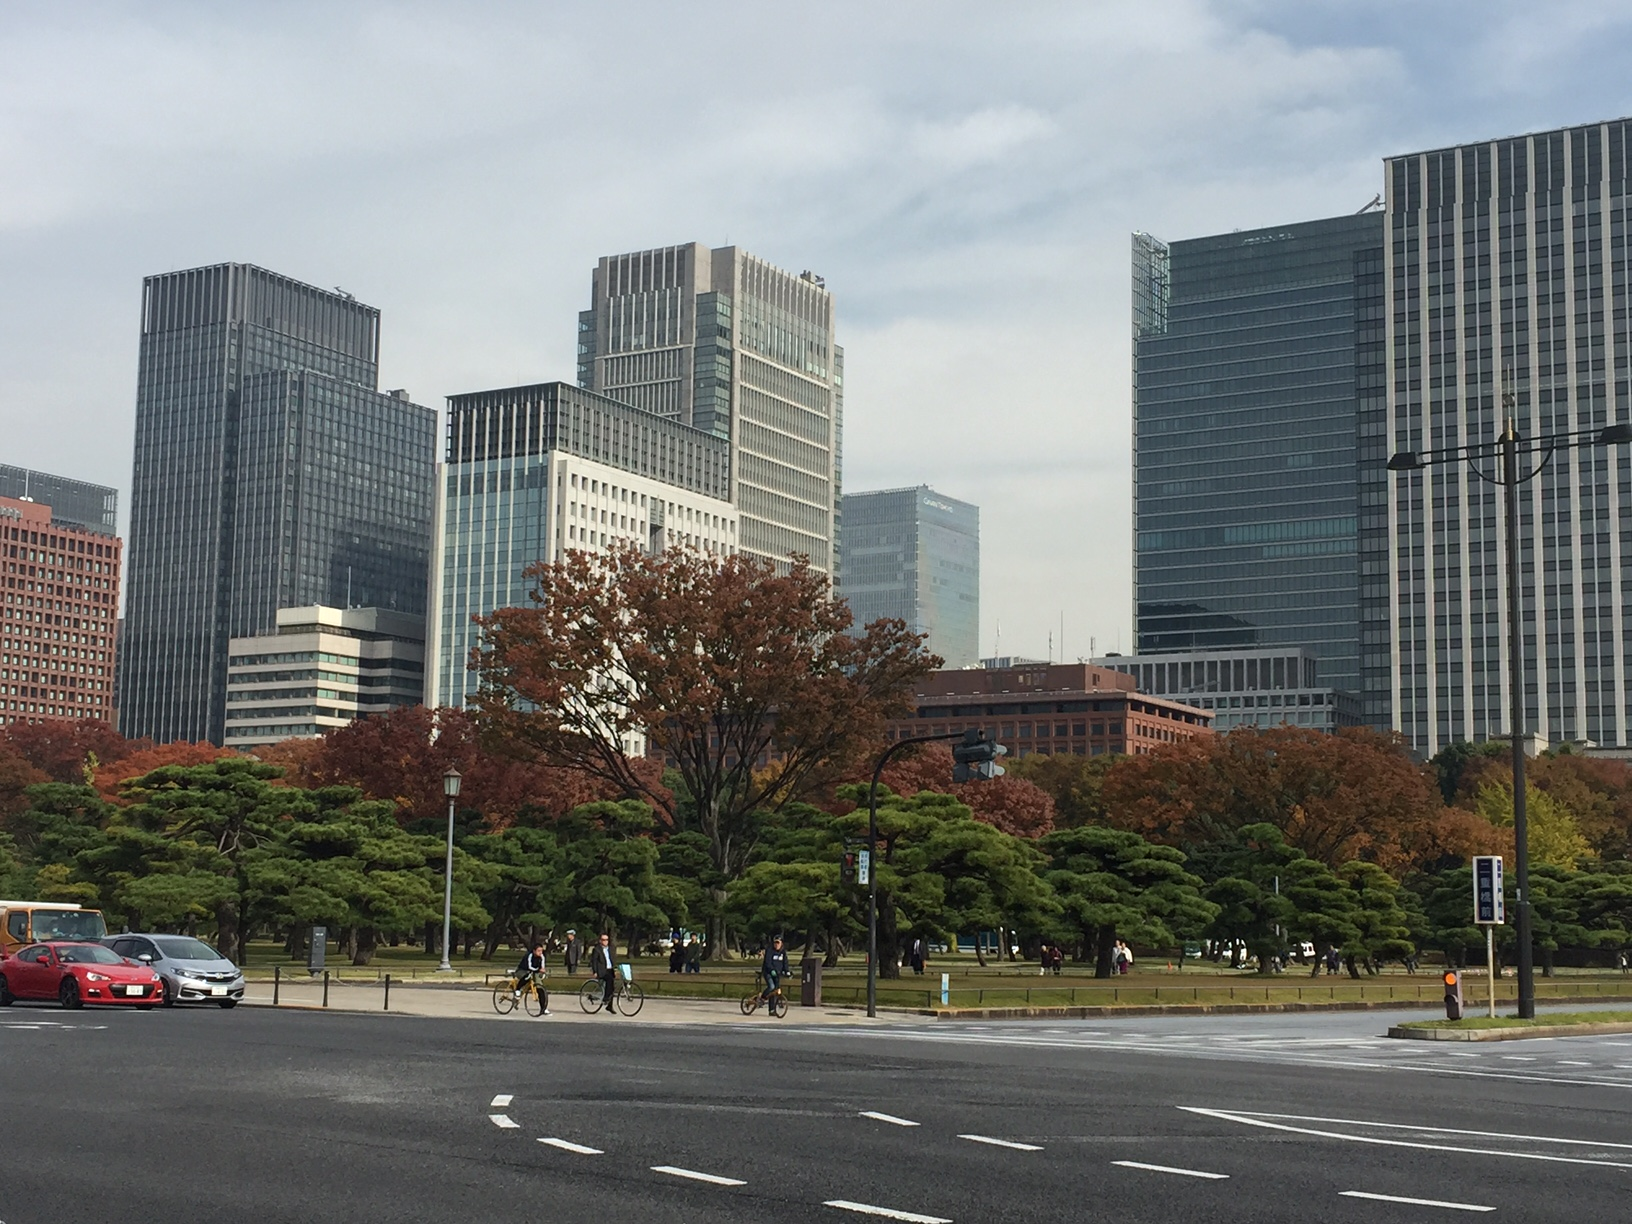 Consumption tax refund from investing Japanese properties